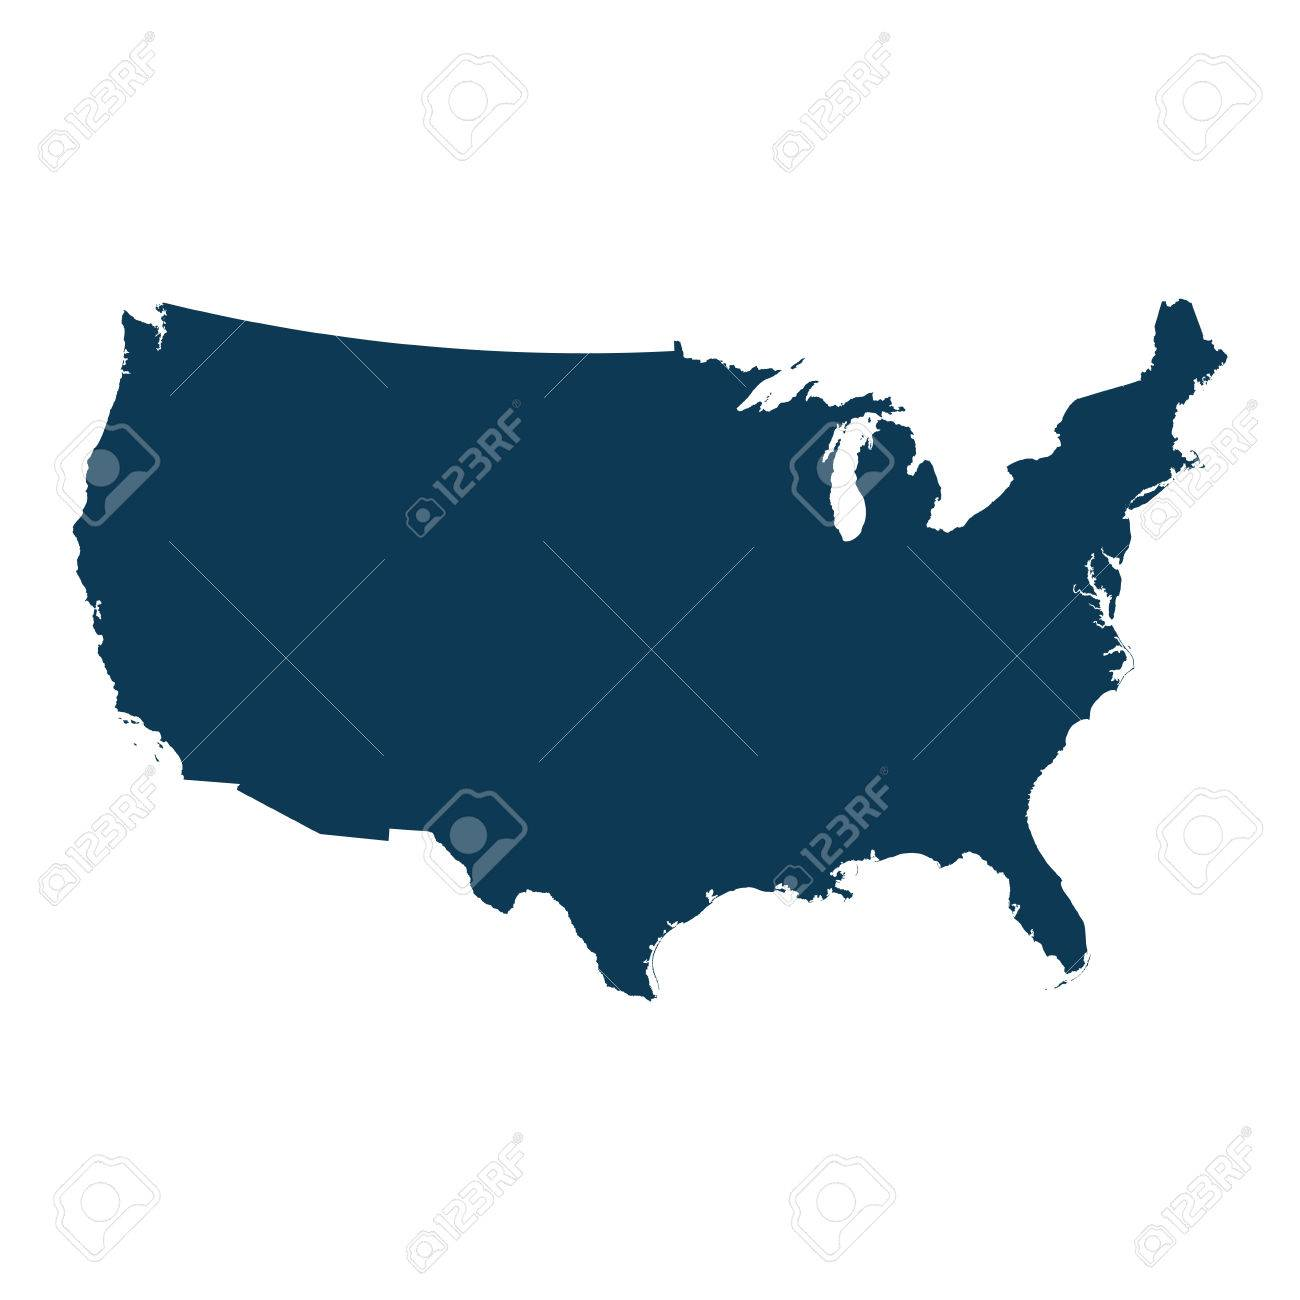 United States Of America Country Map. Usa Territory. Vector ...